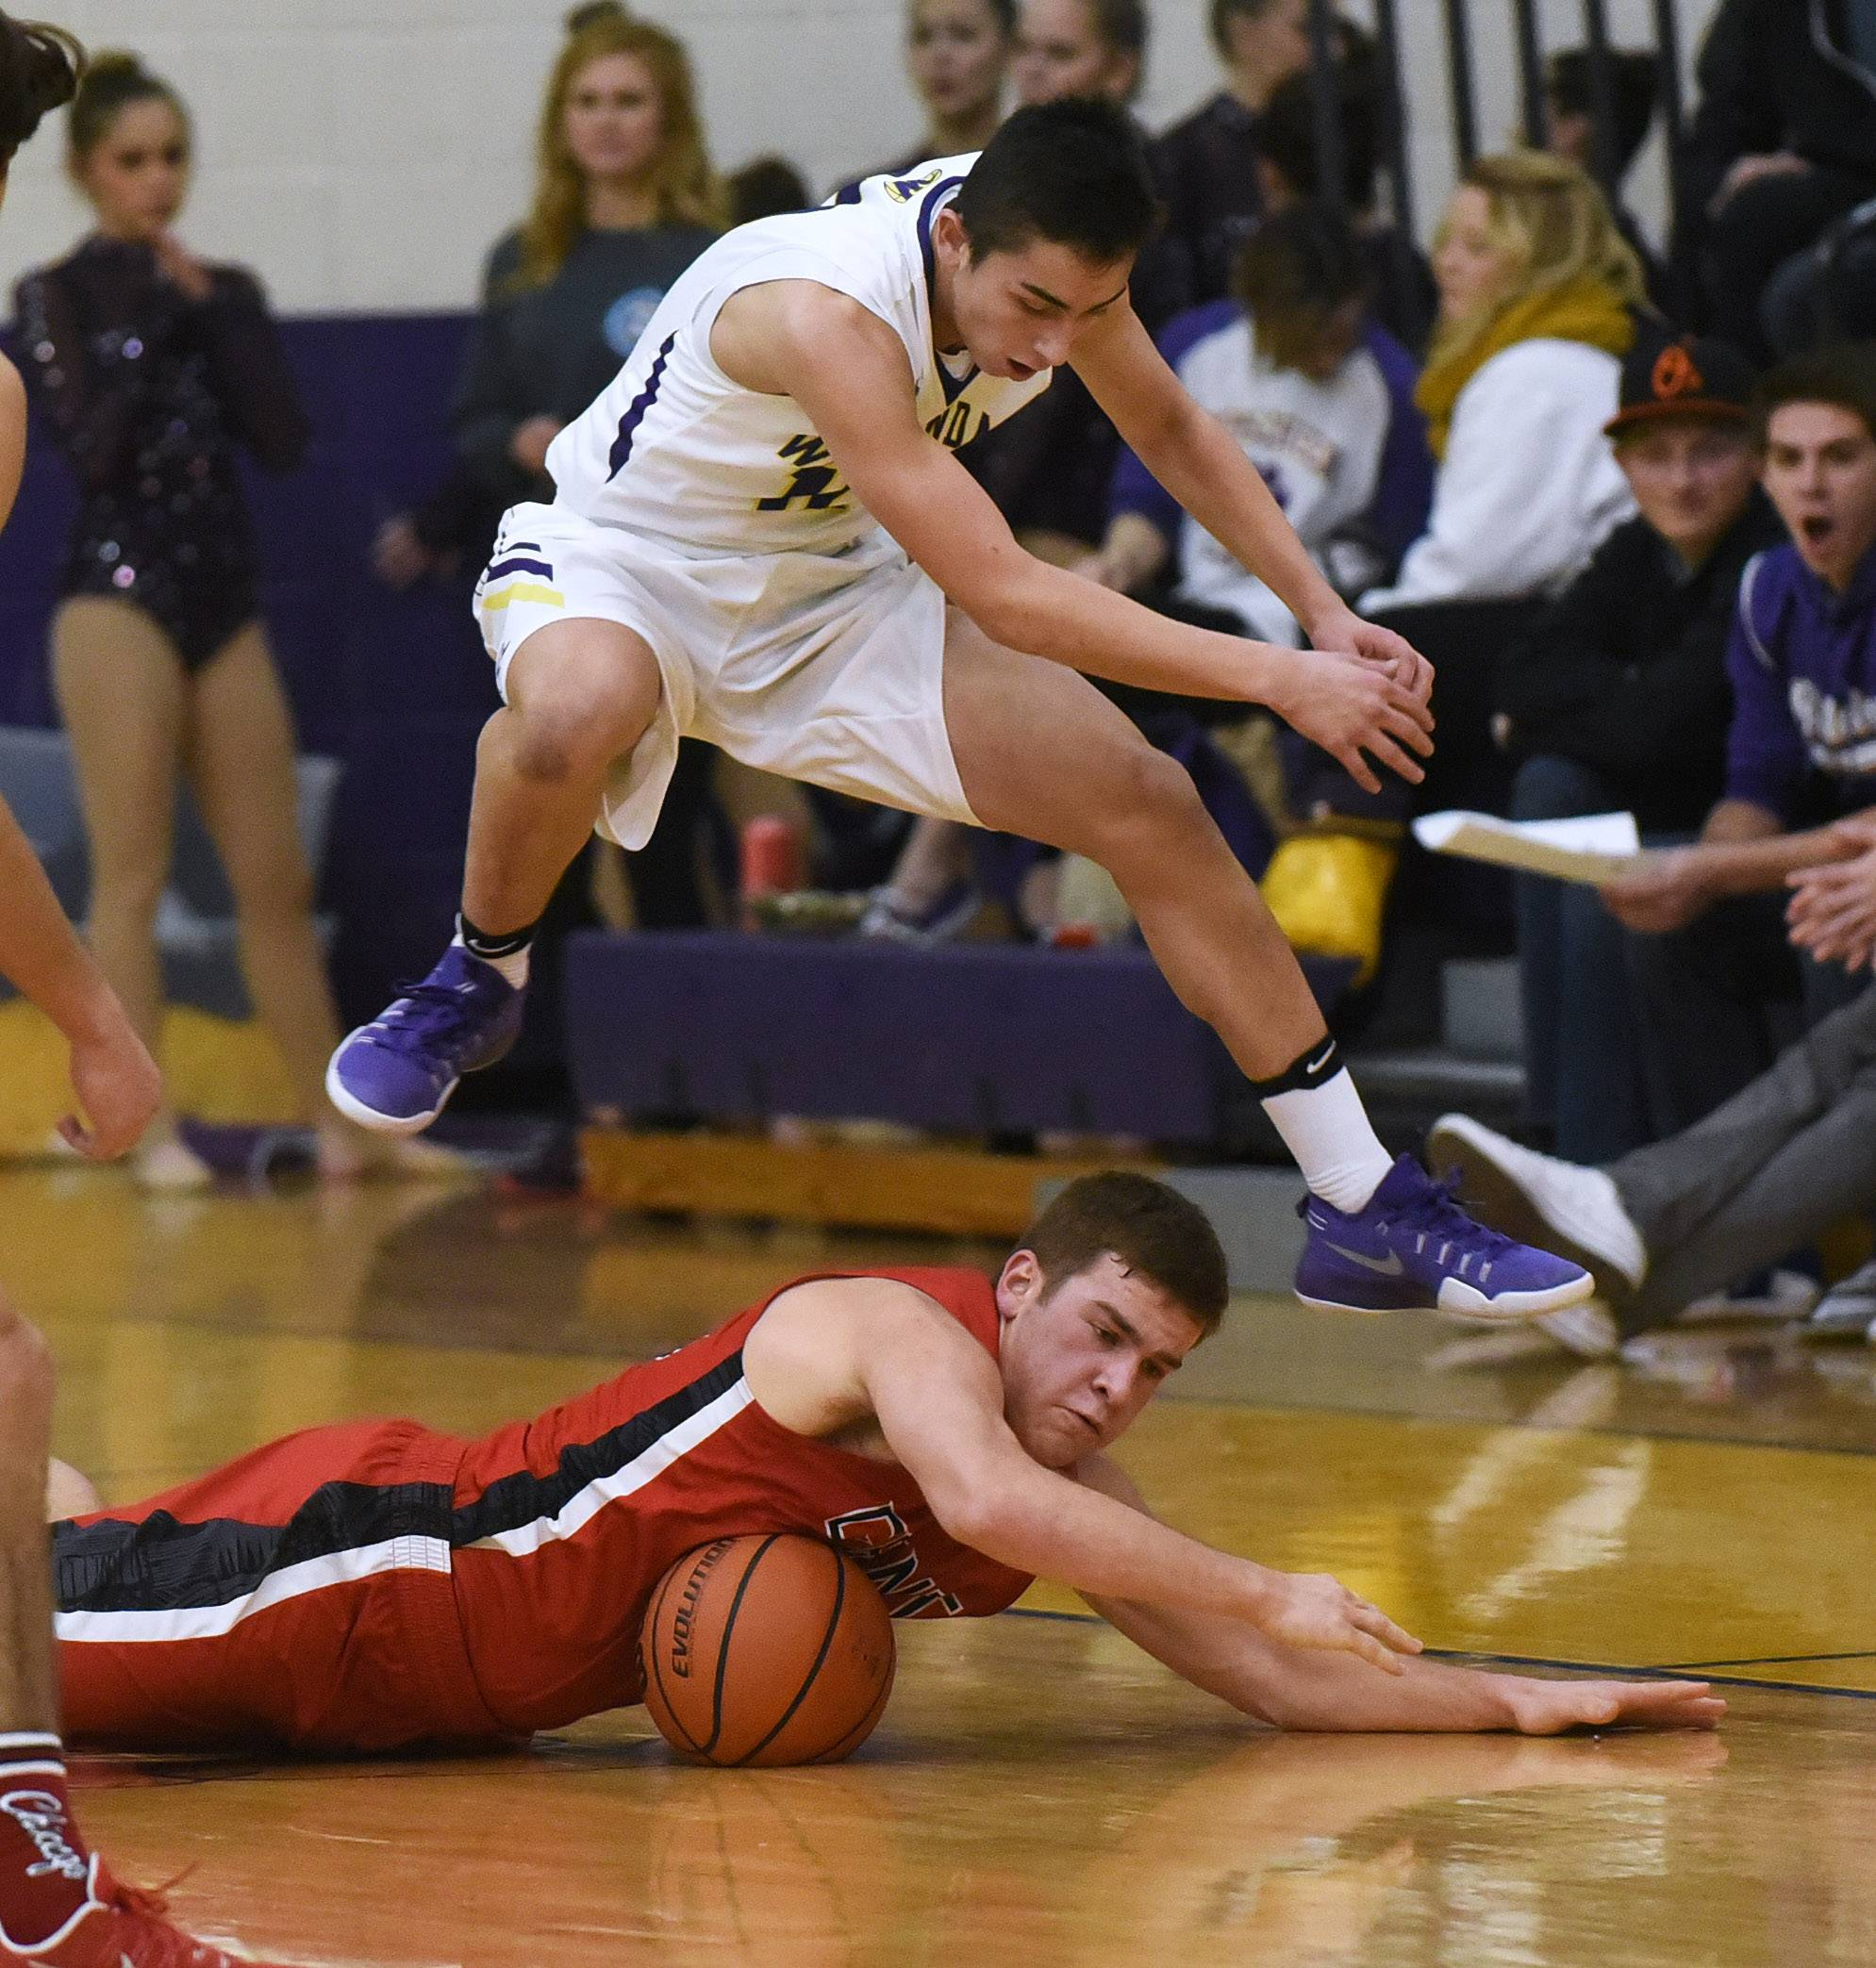 Wauconda's Connor Brannick hops over Grant's Ben Kusiak as they race to a loose ball during Tuesday's game in Wauconda.